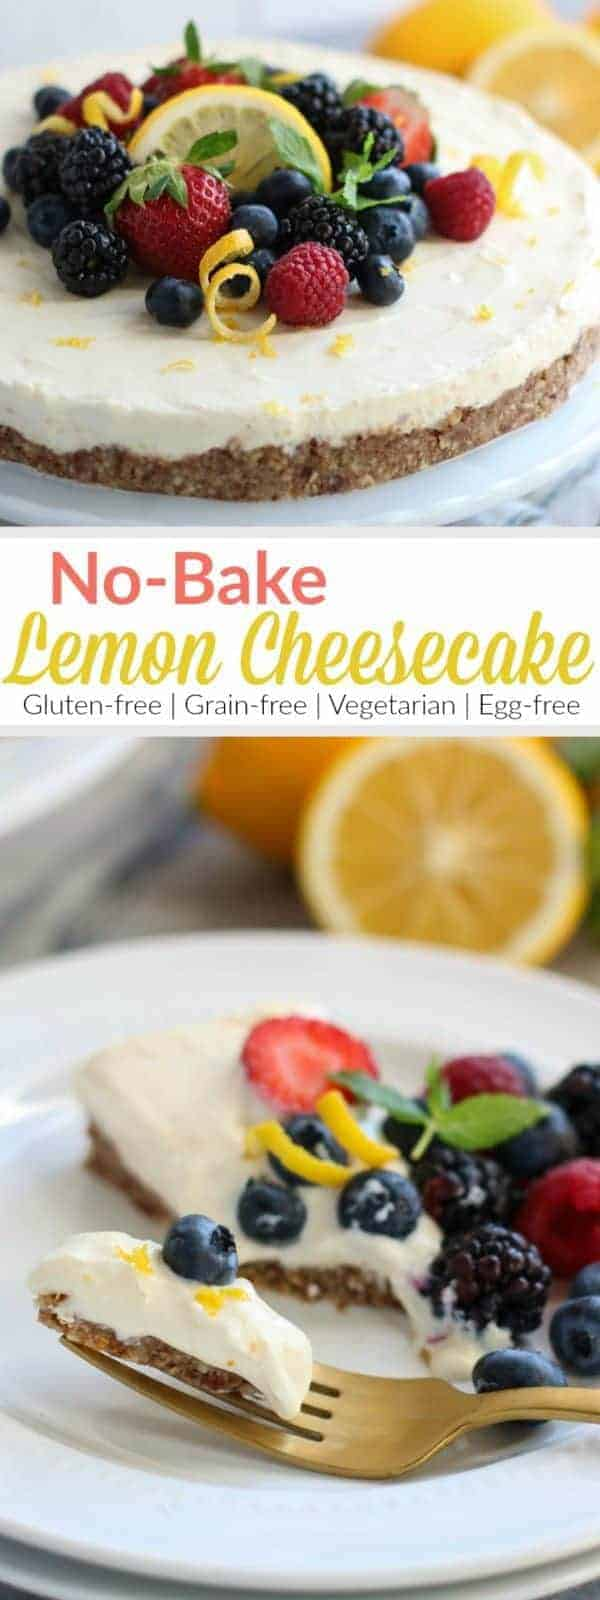 No-Bake Lemon Cheesecake | A light and tangy cheesecake without all the fuss! Serve it with fresh berries and extra lime zest for a simple yet elegant dessert. | The Real Food Dietitians | http://therealfoodrds.com/no-bake-lemon-cheesecake/